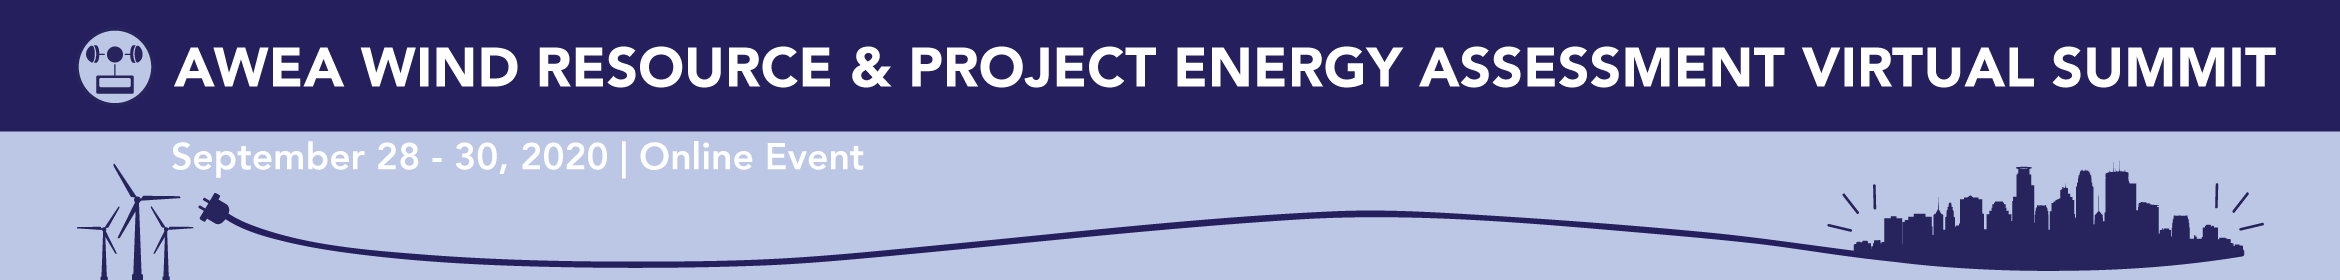 Wind Resource & Project Energy Assessment 2020 Main banner